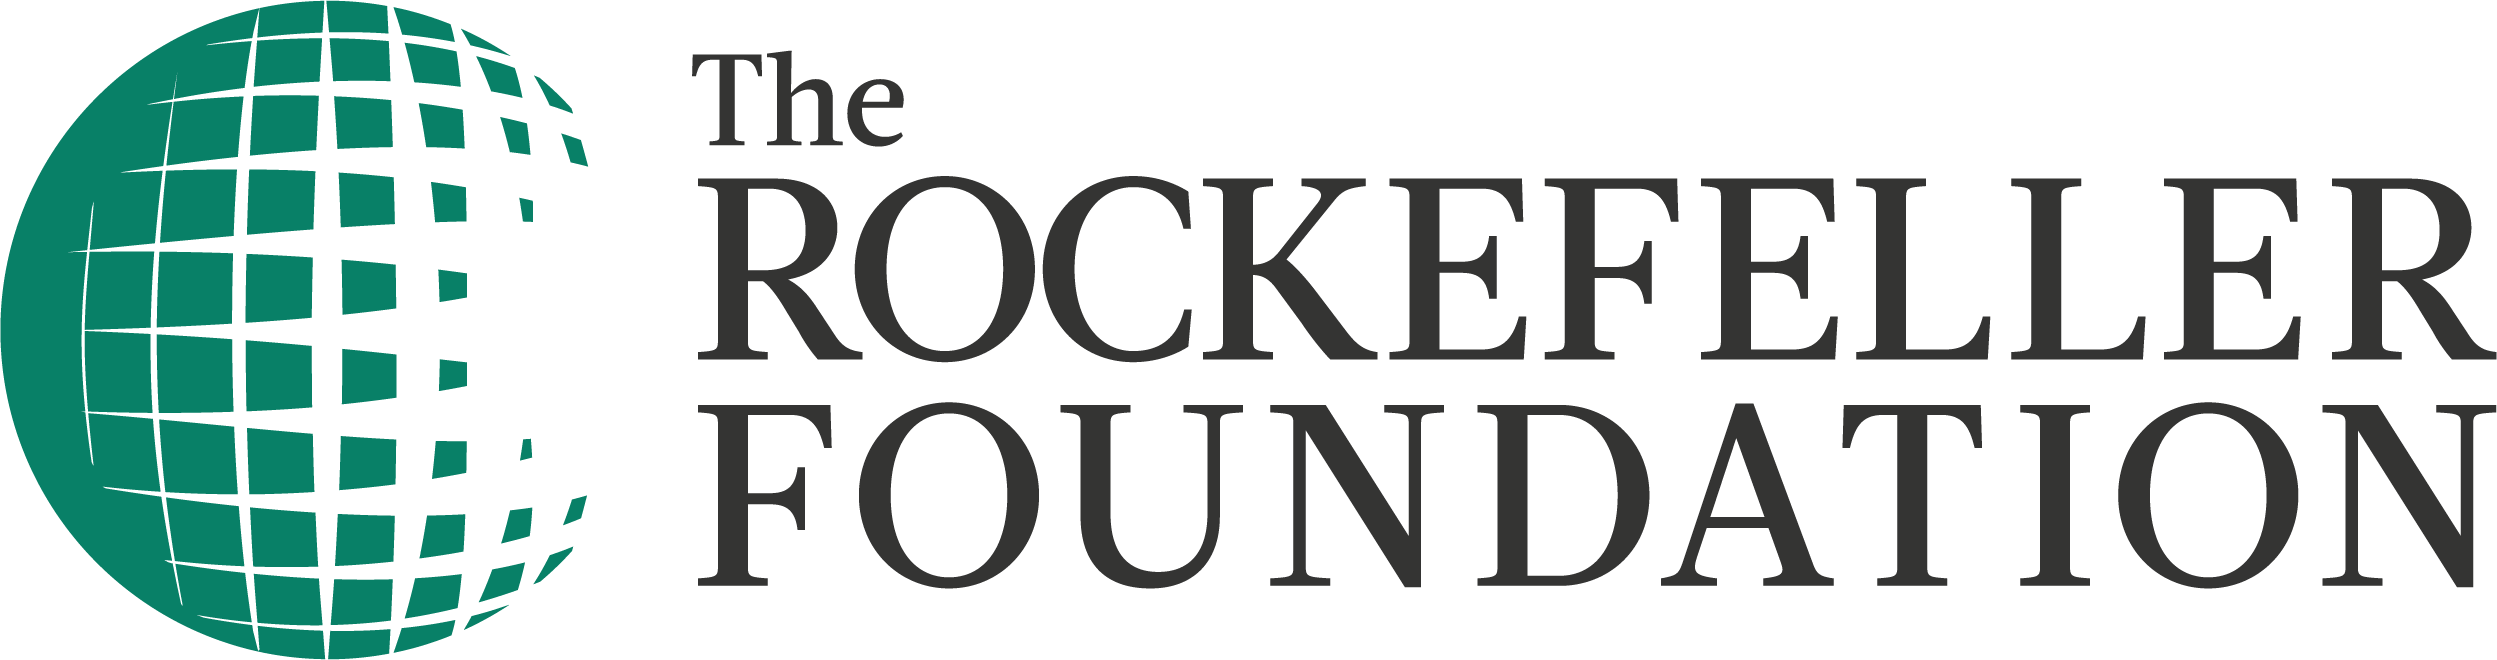 The Rockefeller Foundation